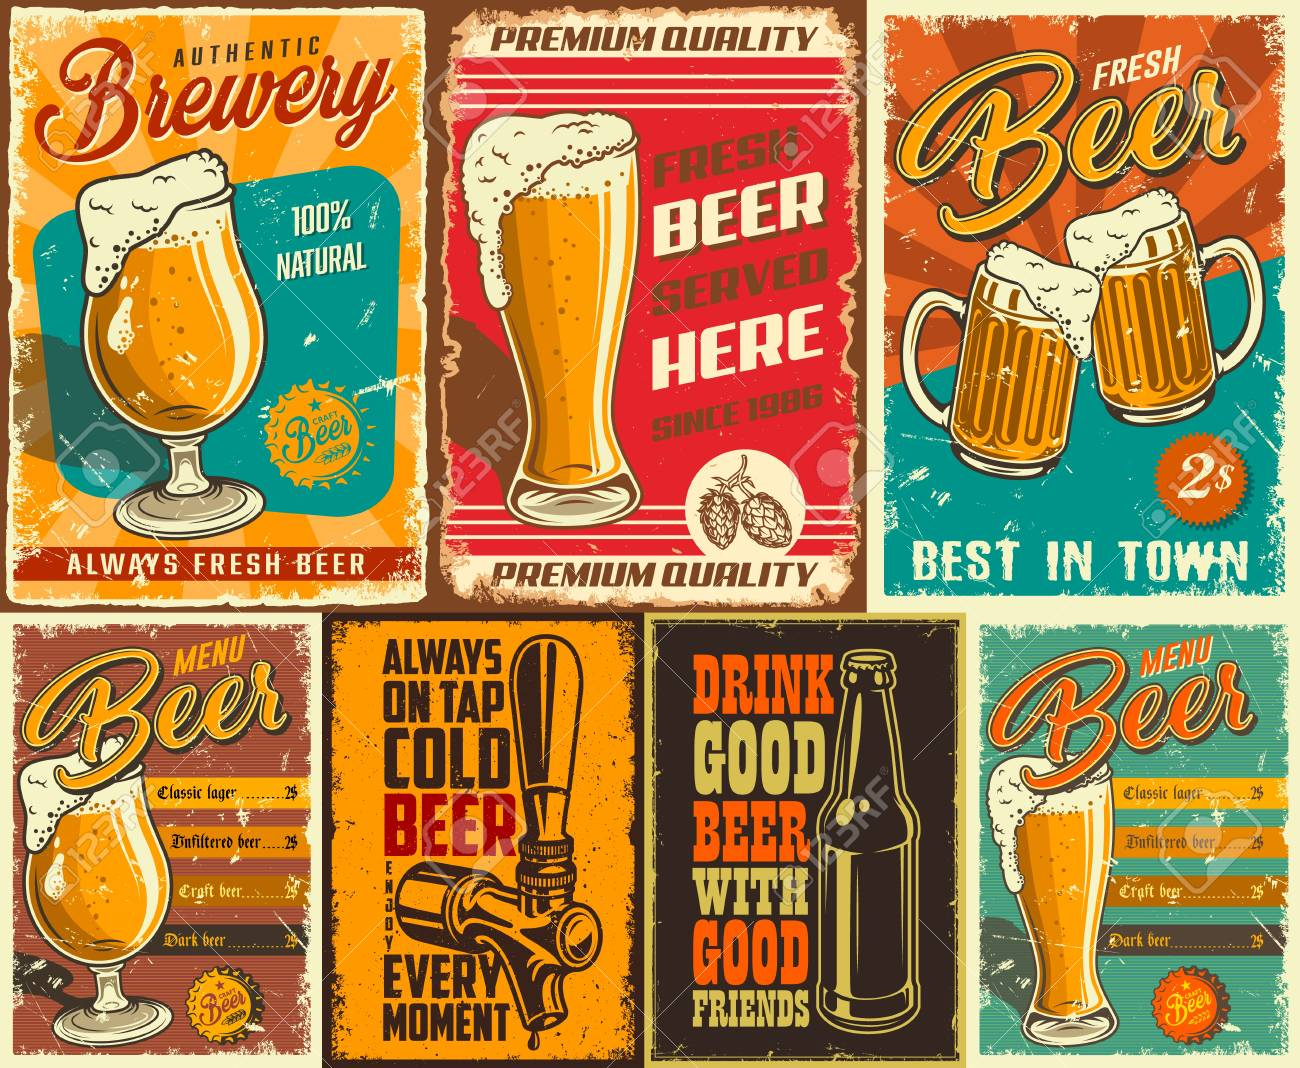 Set of beer poster in vintage style with grunge textures and beer objects. Vector illustration. - 98713879